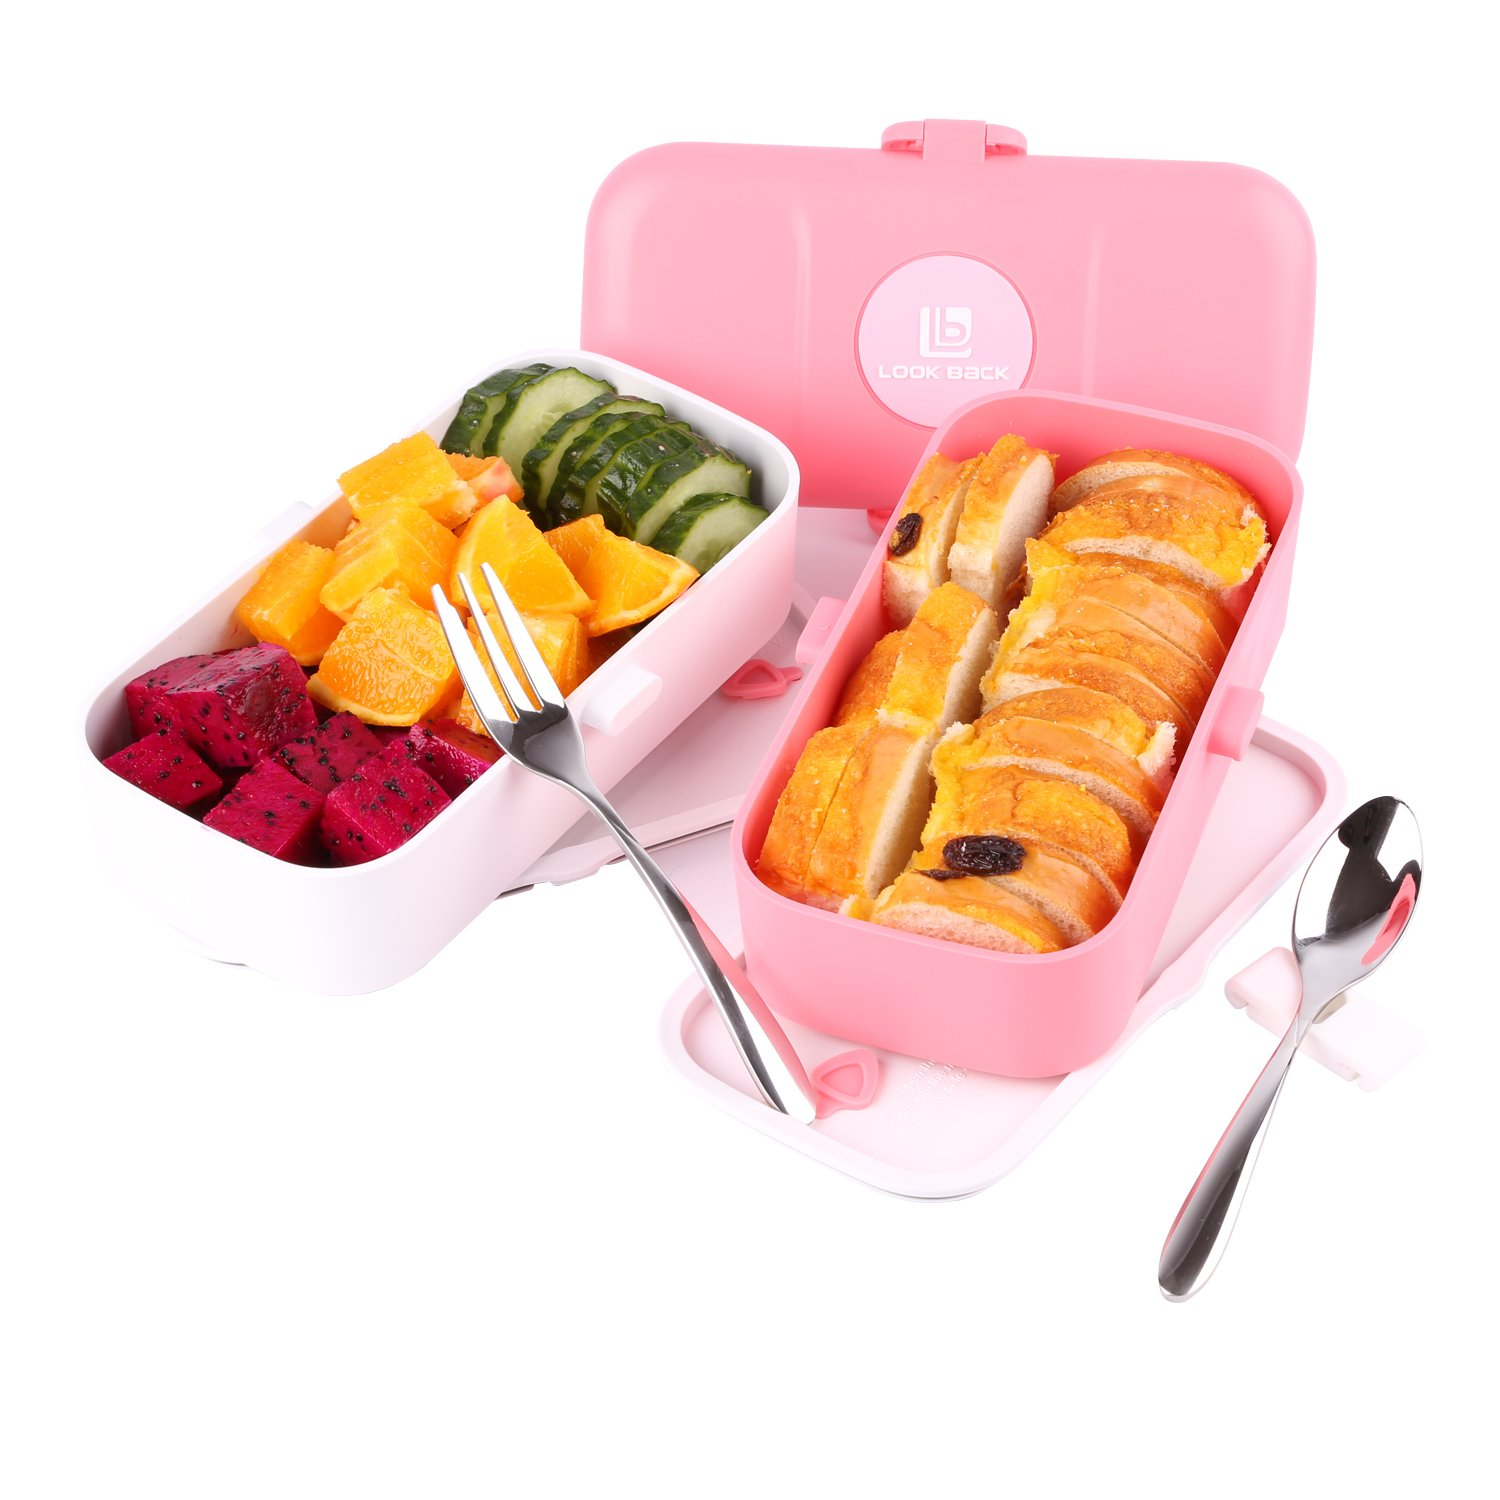 Top Back-to-School Lunchbox Ideas